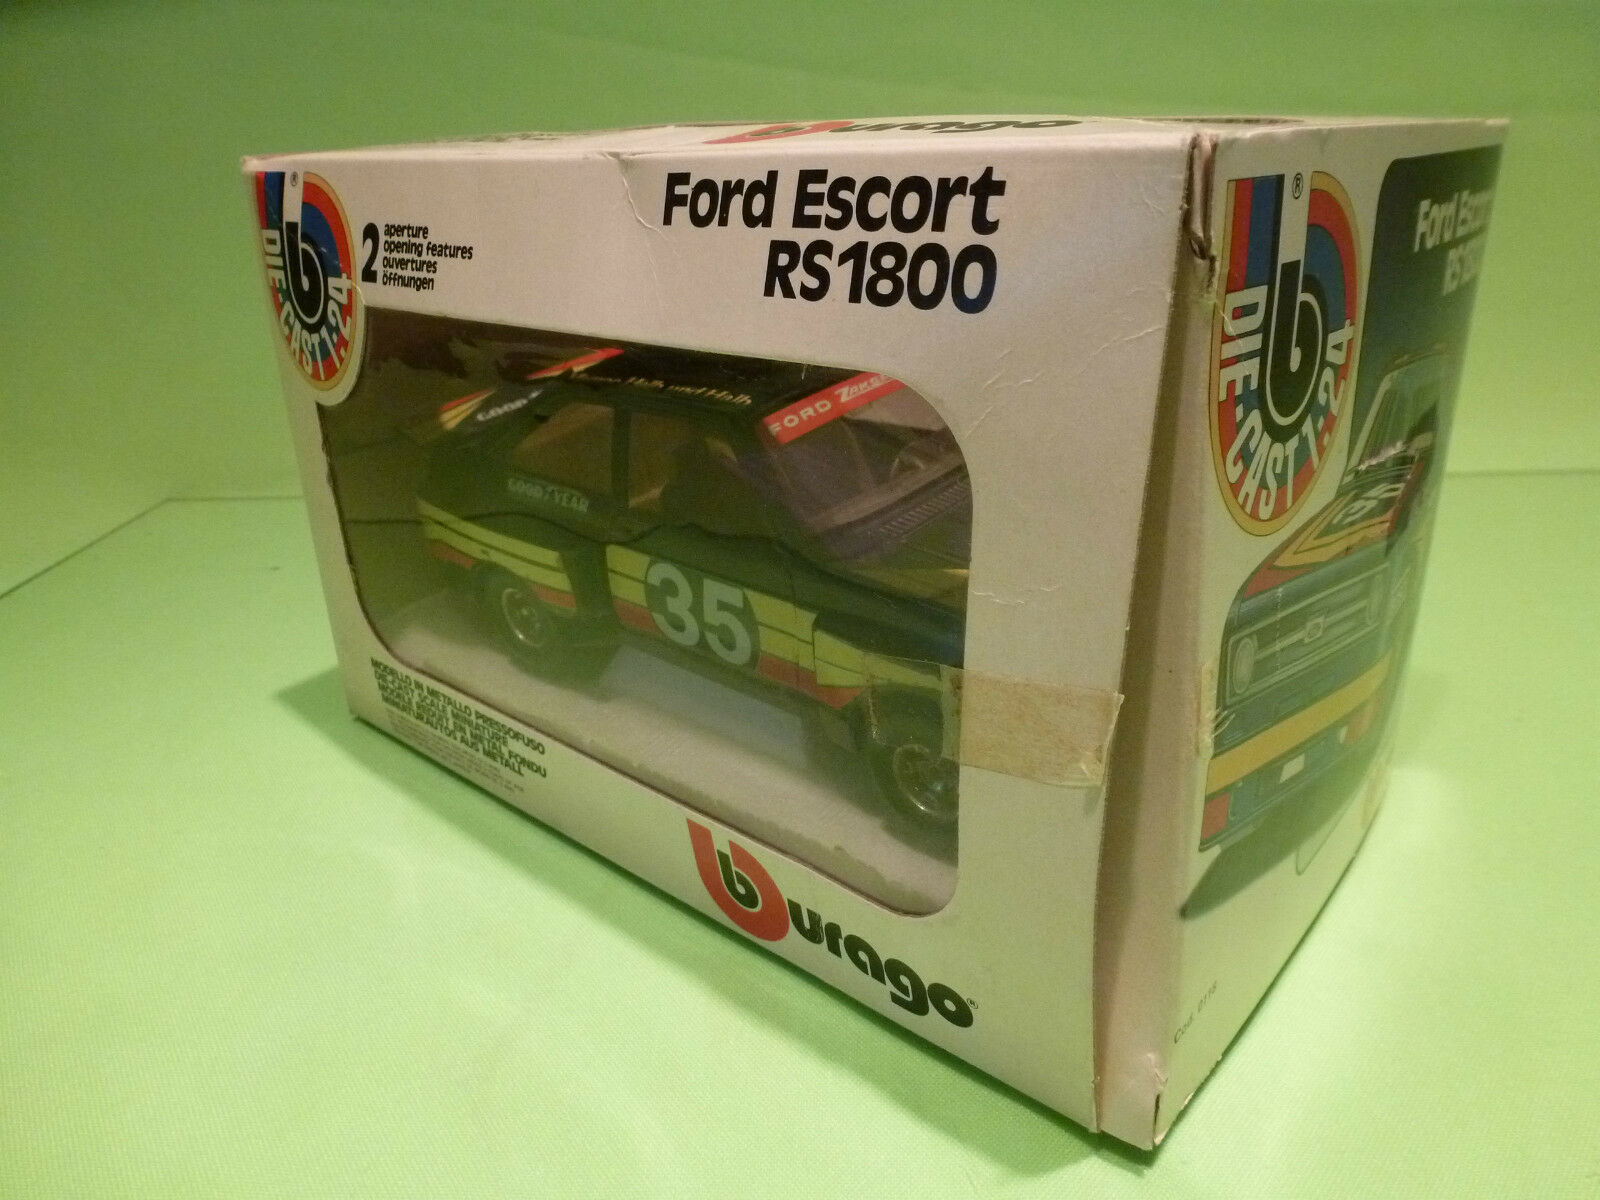 BBURAGO 0118 FORD ESCORT ESCORT ESCORT RS 1800 - RALLY 1 24 - RARE SELTEN - GOOD COND. IN BOX 9ad91c